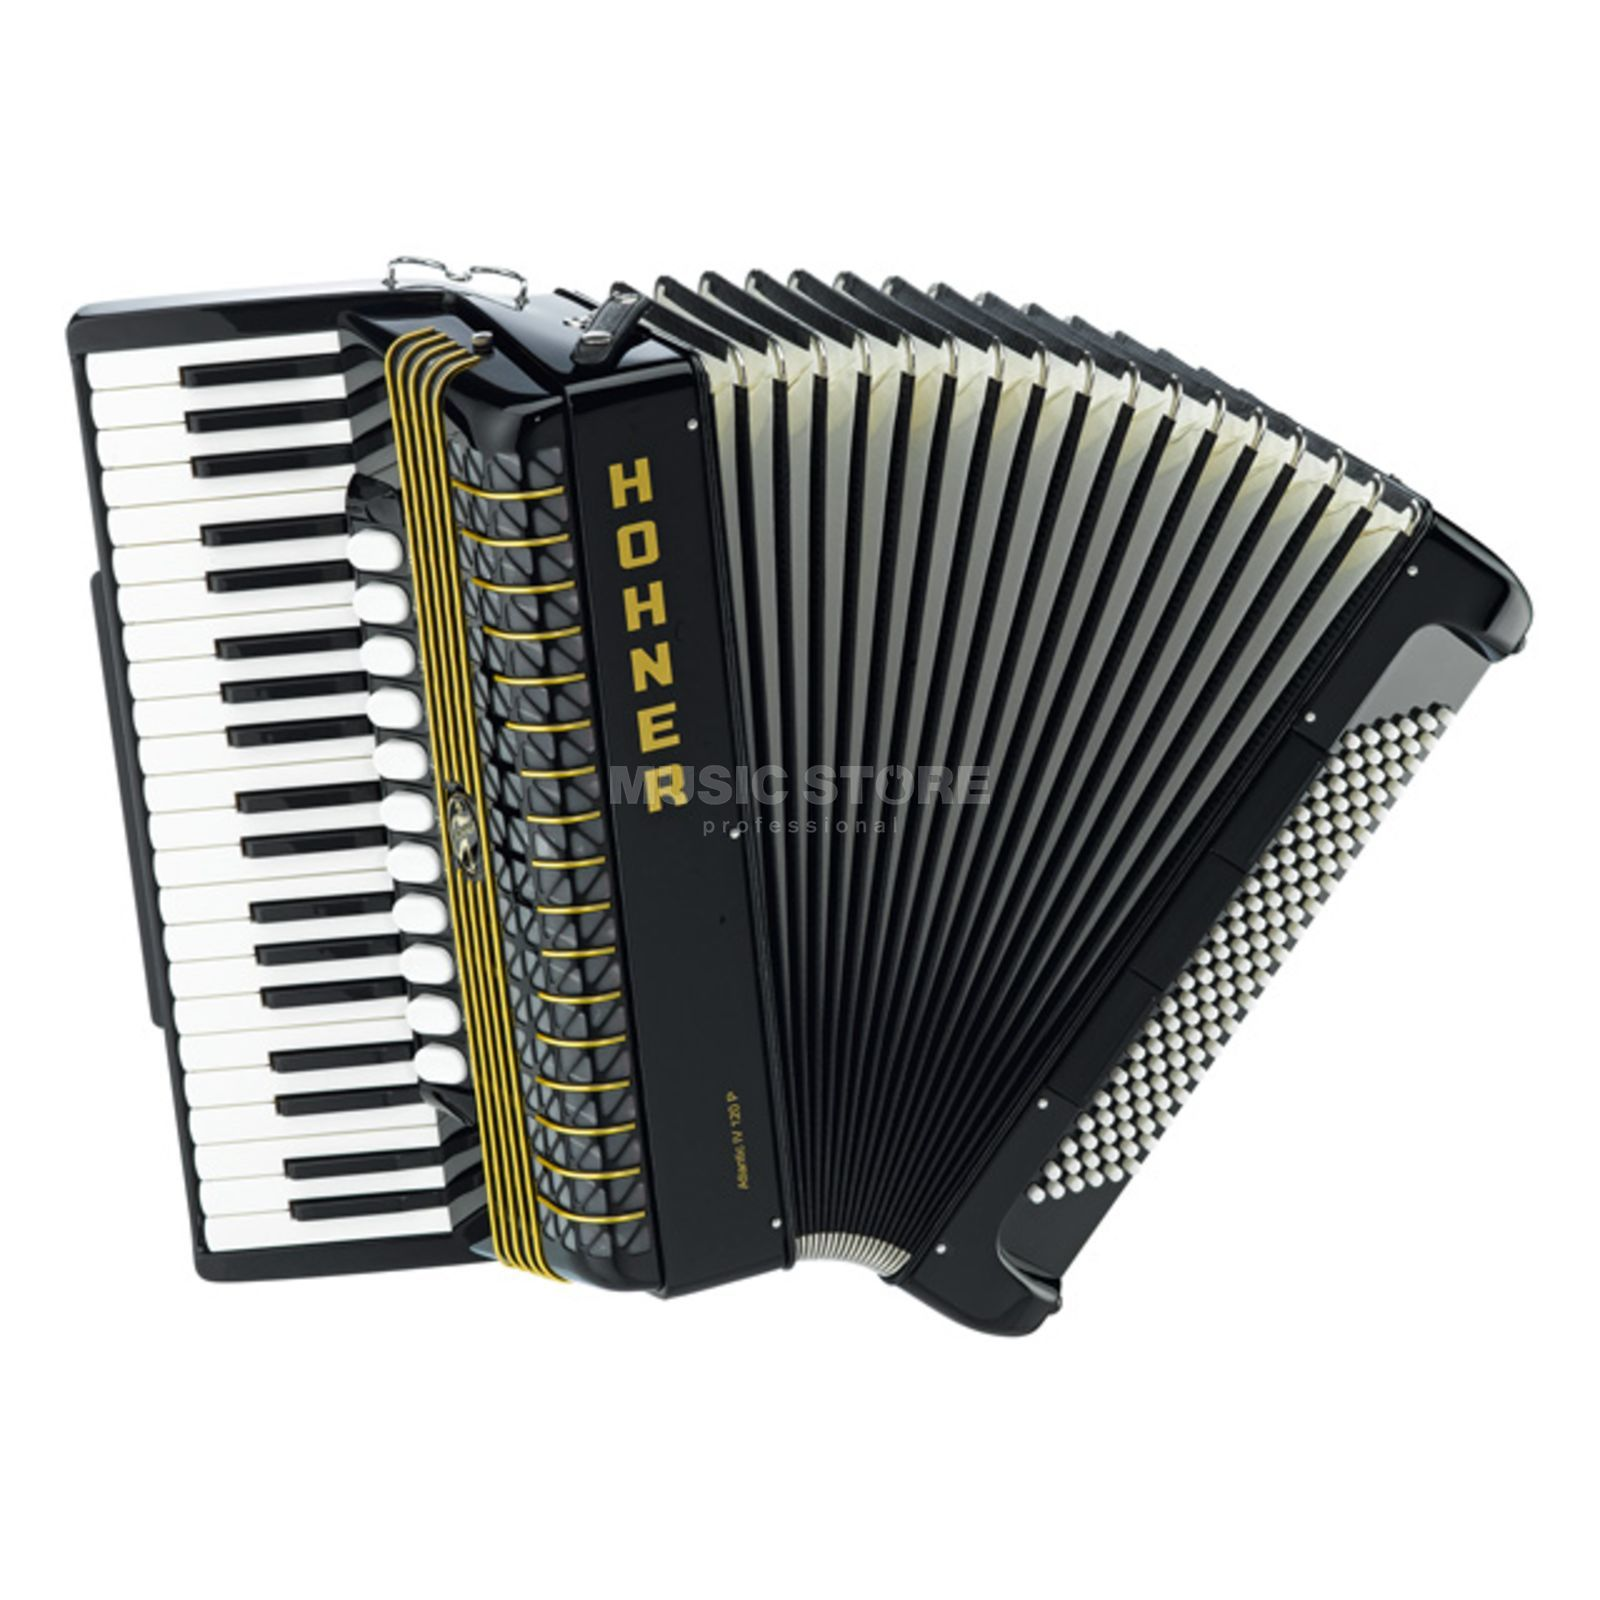 Hohner Piano-Accordion Atlantic 120 bass, IV voices, Black Produktbillede